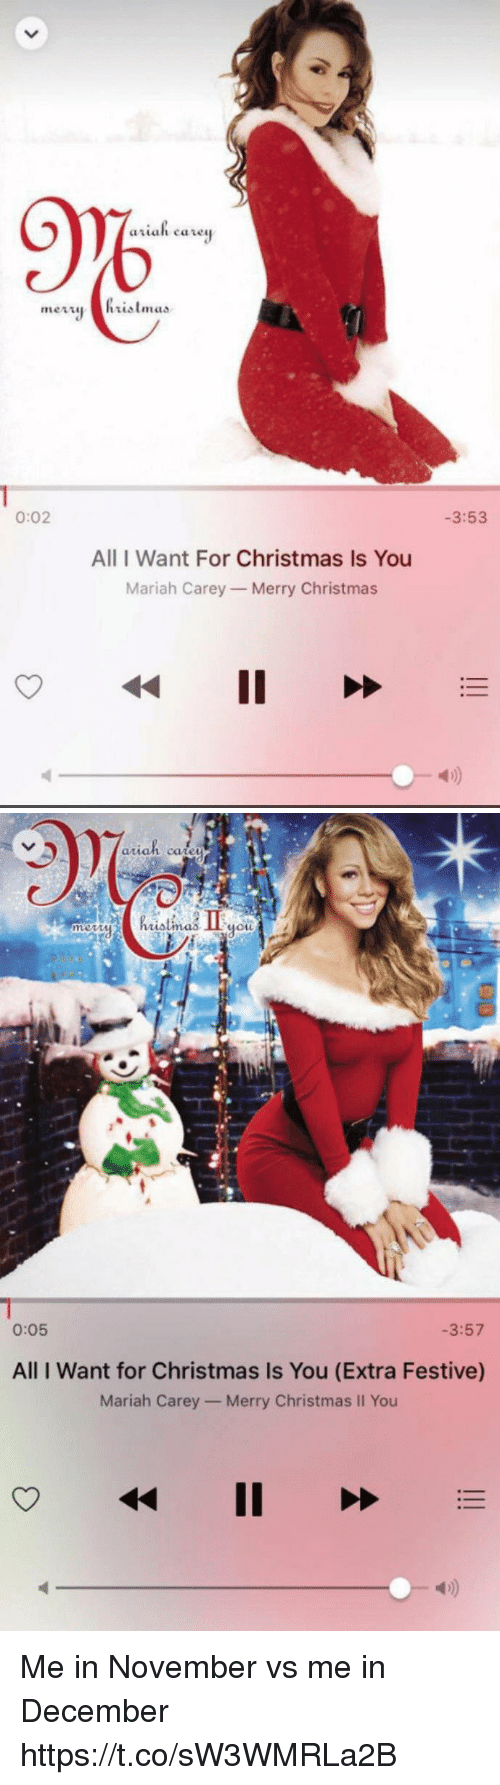 All I Want for Christmas is You: 9%  0:02  -3:53  All I Want For Christmas Is You  Mariah Carey Merry Christmas  4D)   aran ca  mmem  MOLL  0:05  -3:57  All I Want for Christmas Is You (Extra Festive)  Mariah Carey- Merry Christmas II You  4) Me in November vs me in December https://t.co/sW3WMRLa2B